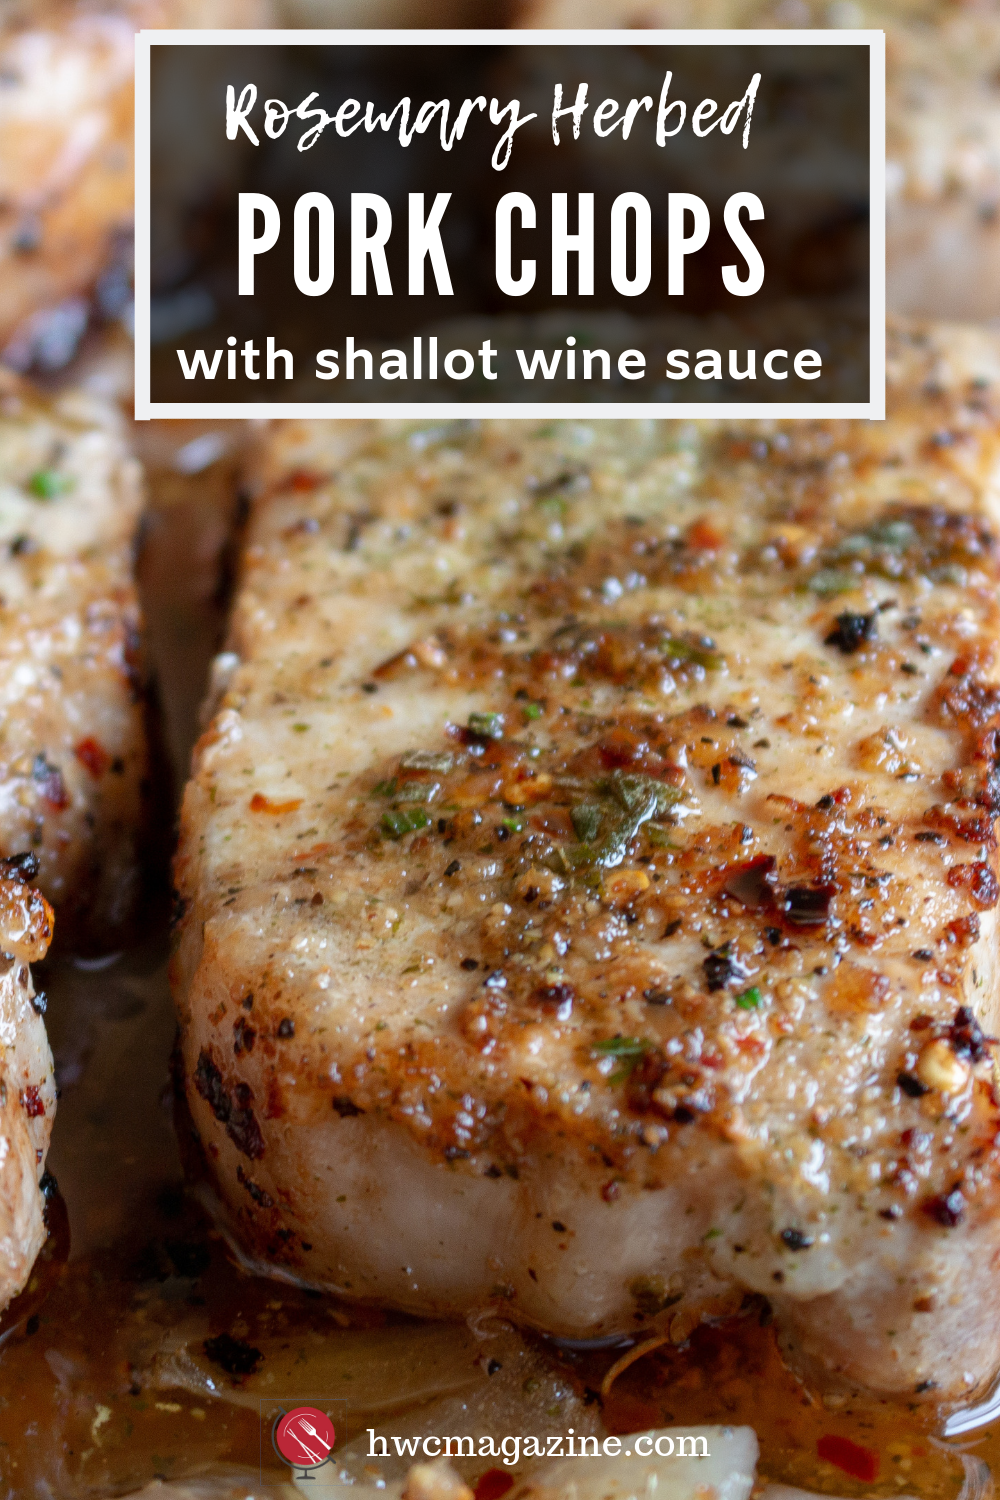 Rosemary Herbed Pork Chops with Shallot Wine Sauce / https://www.hwcmagazine.com